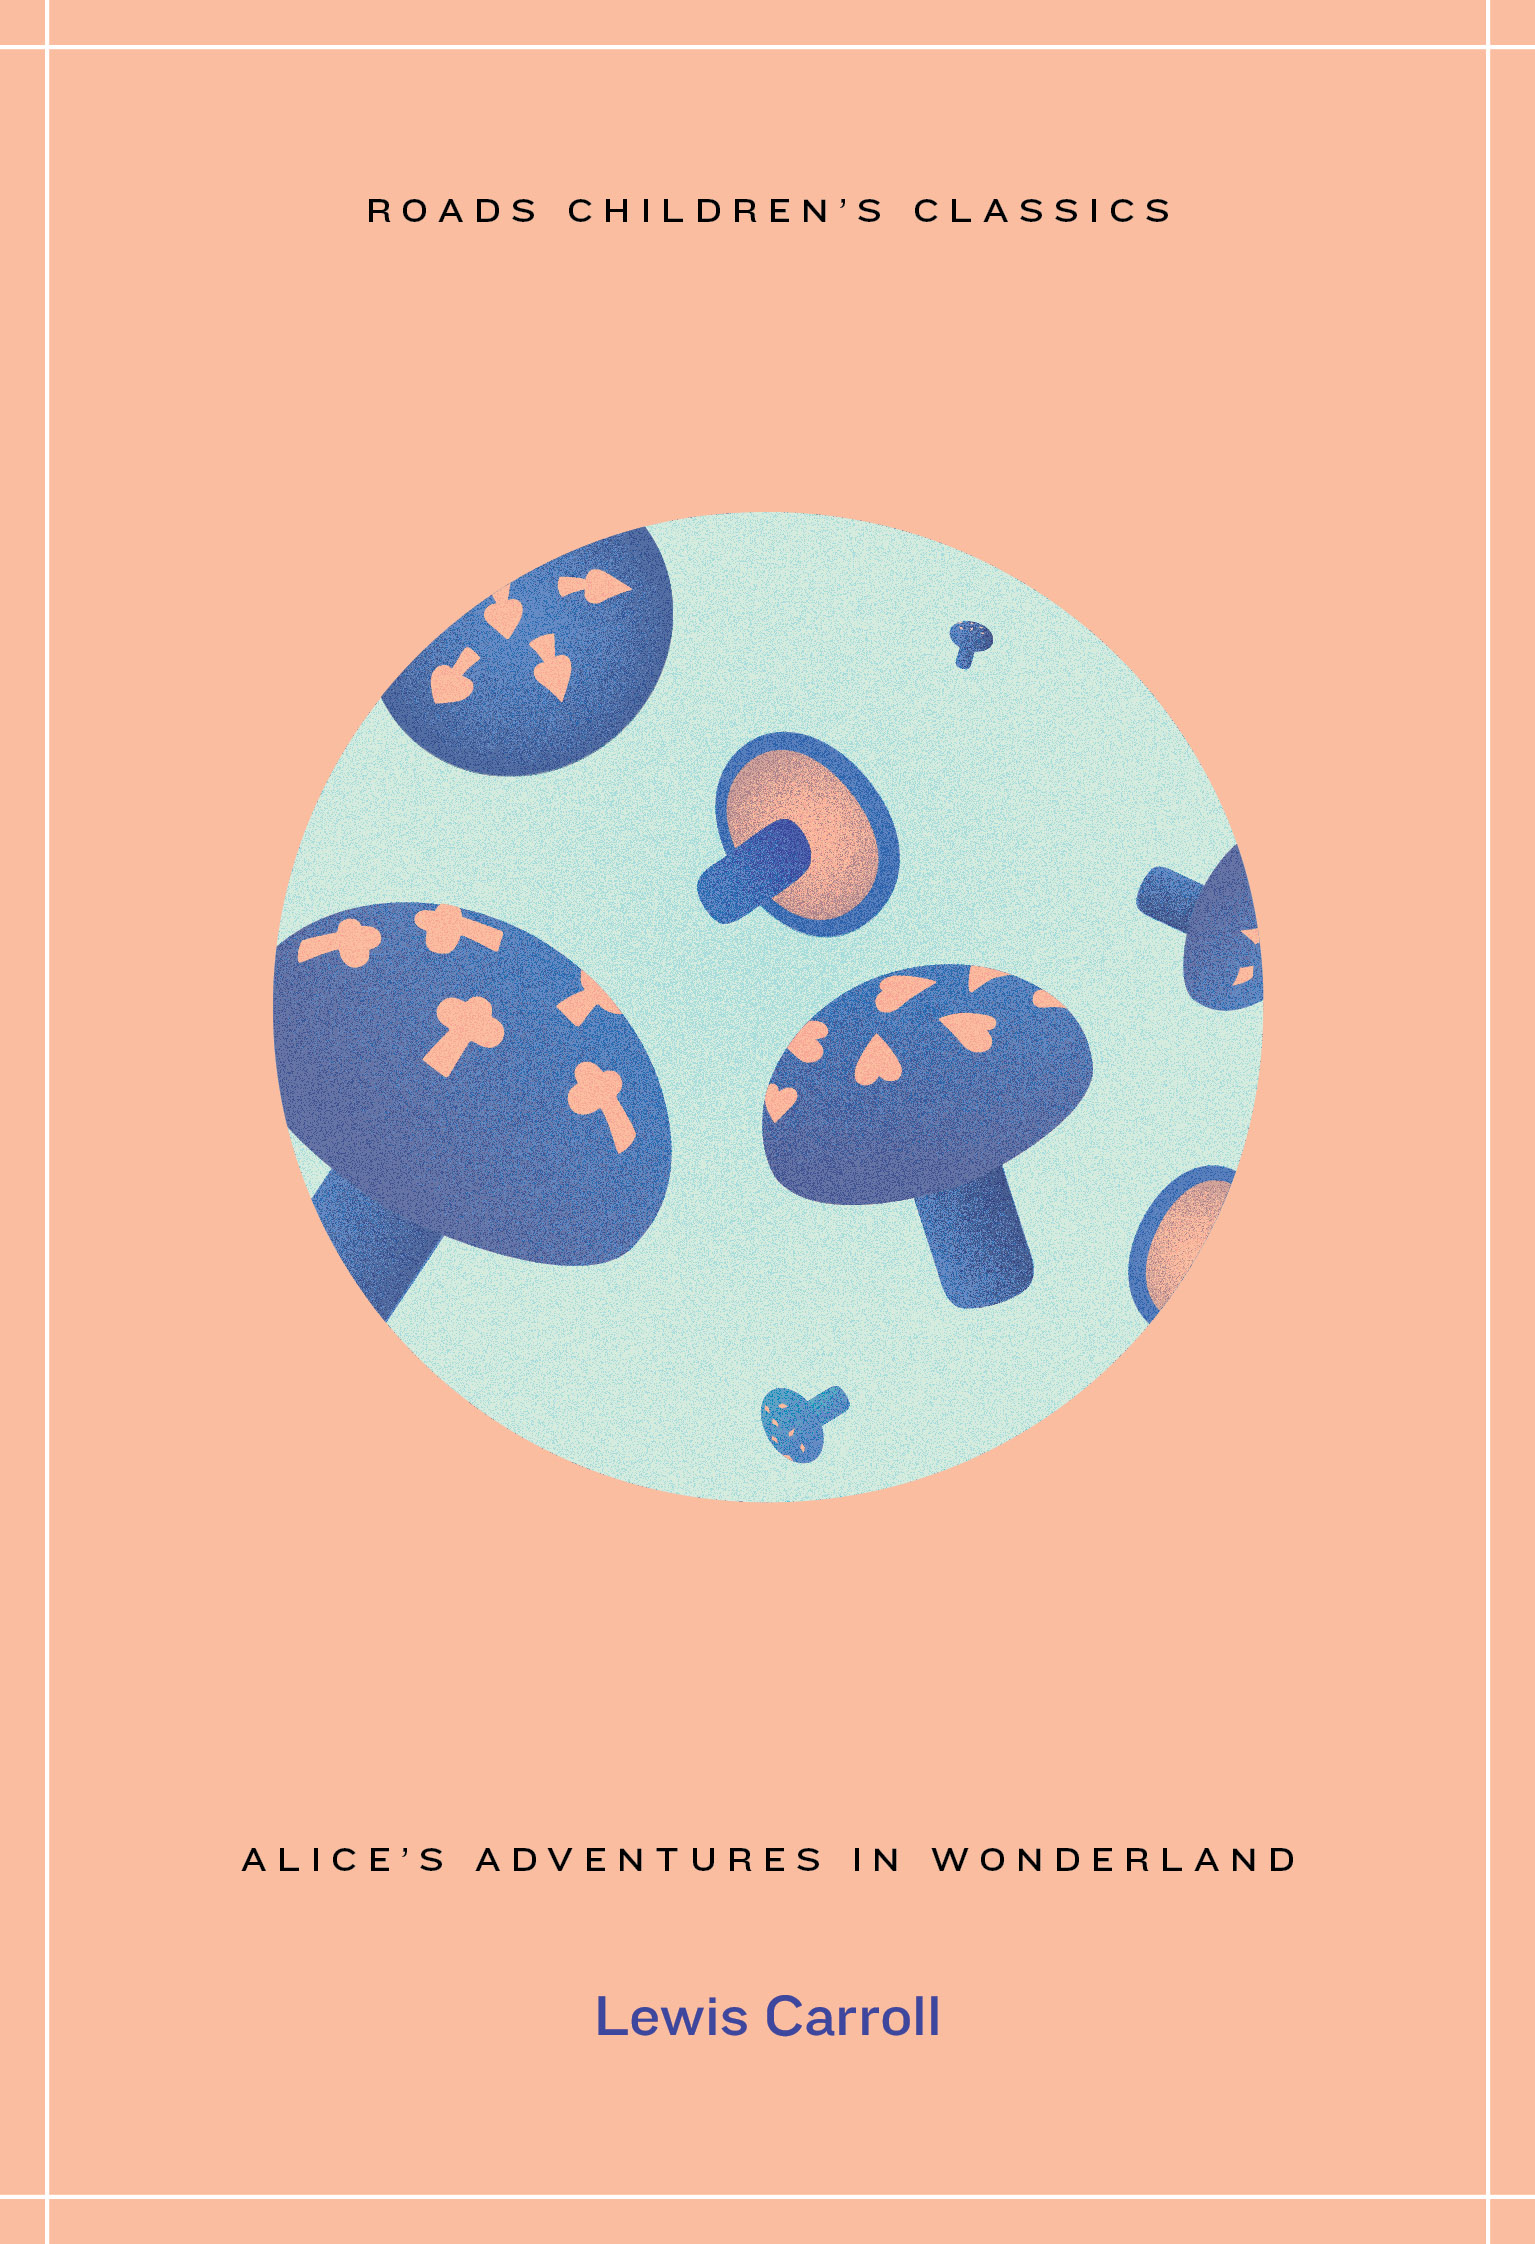 Cover image: Alice's Adventures in Wonderland